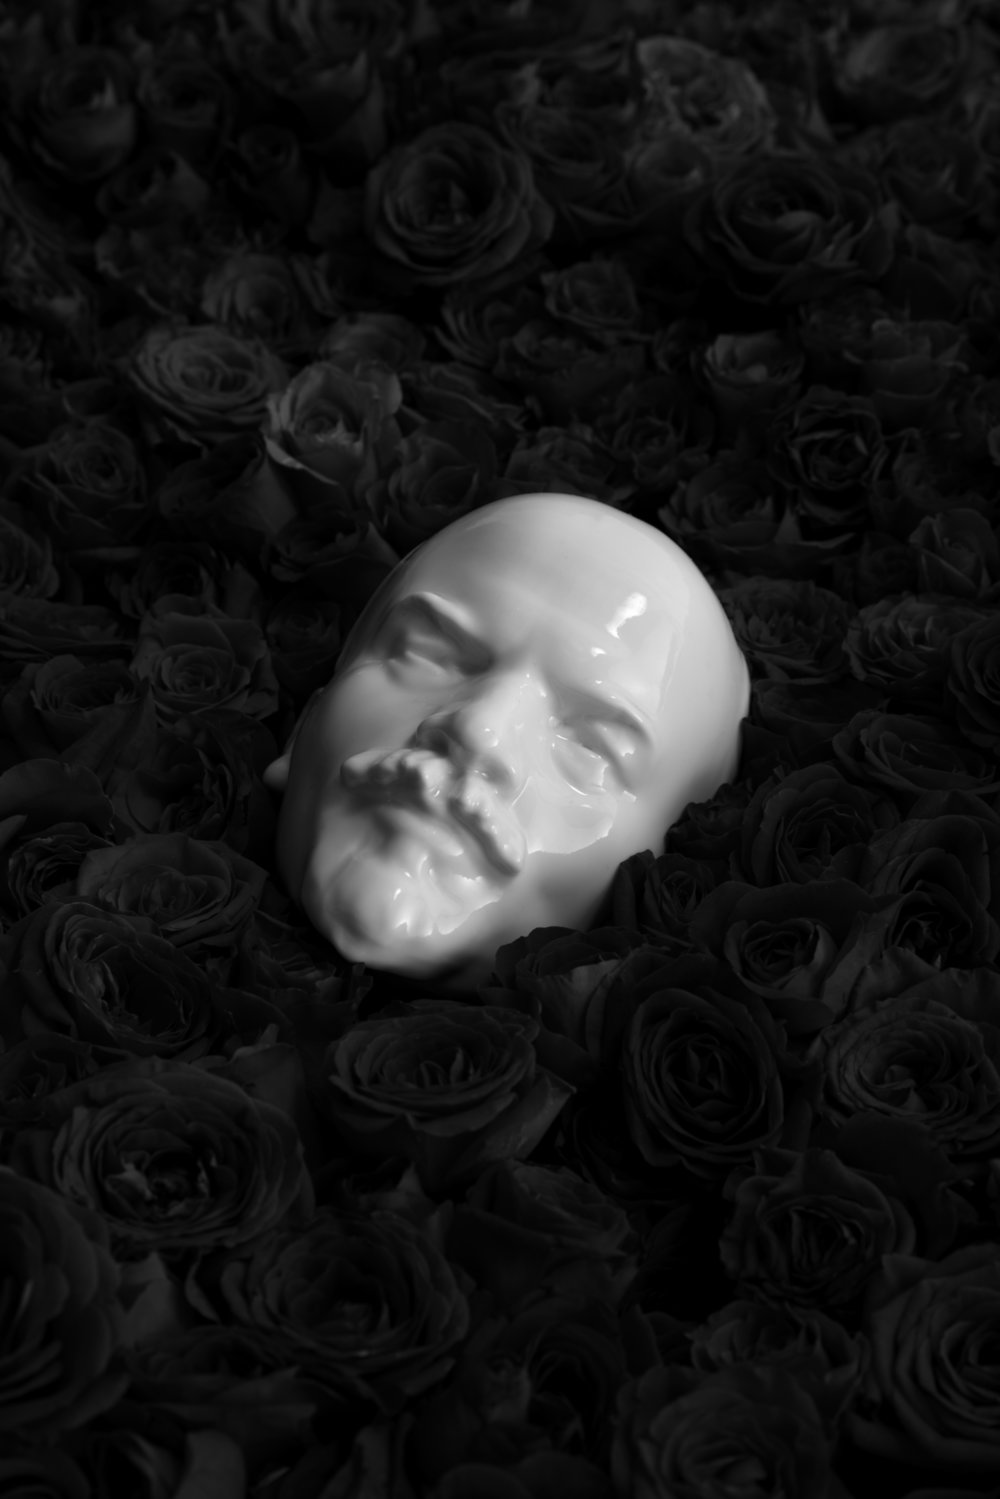 Still Life With Lenin and Roses